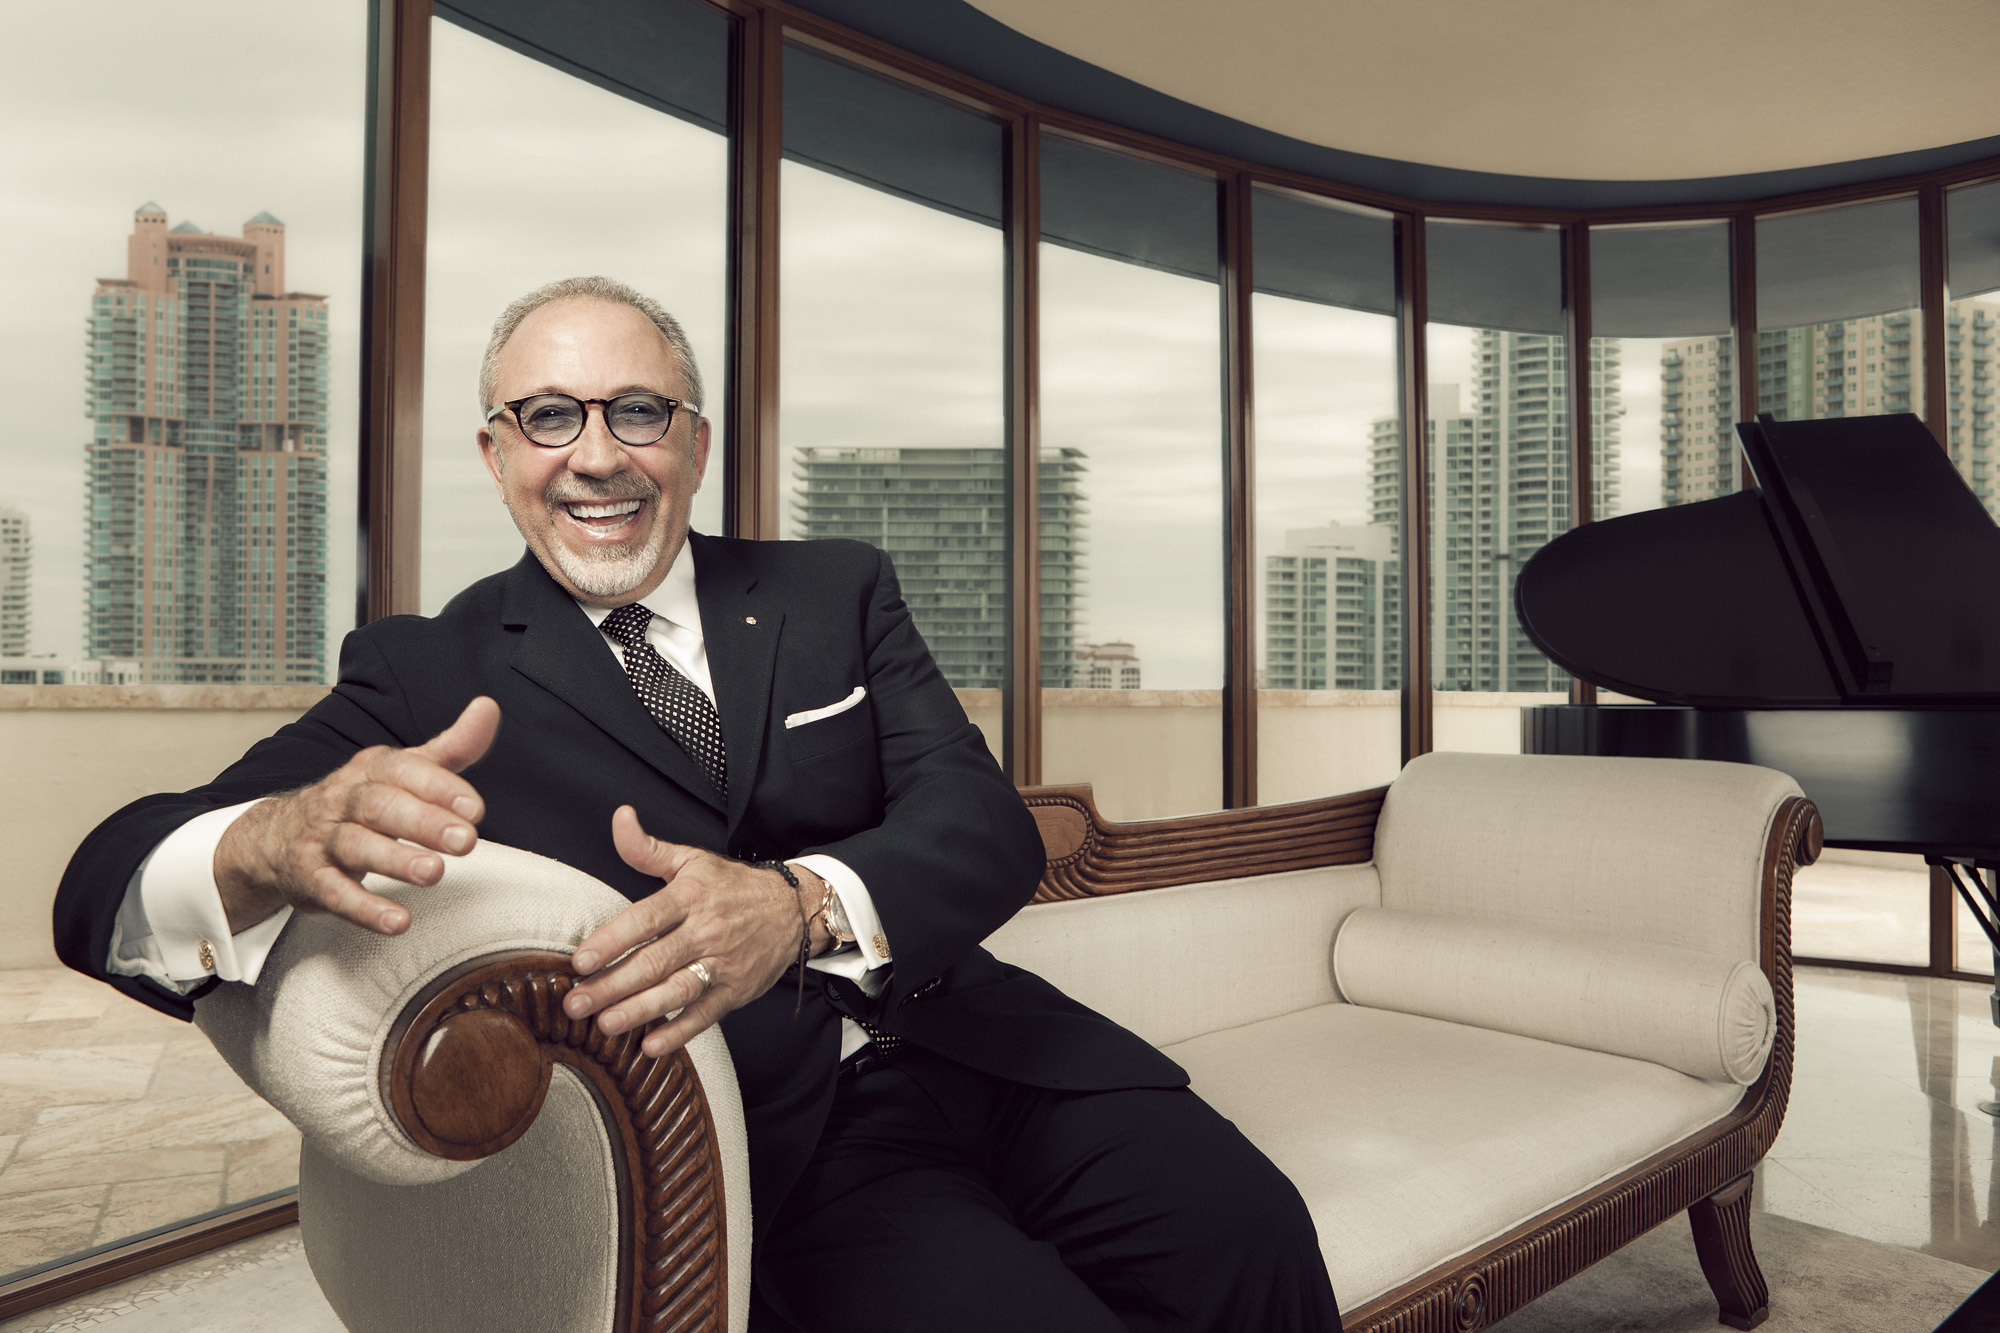 cc2011063 - Emilio Estefan for AARP the magazine